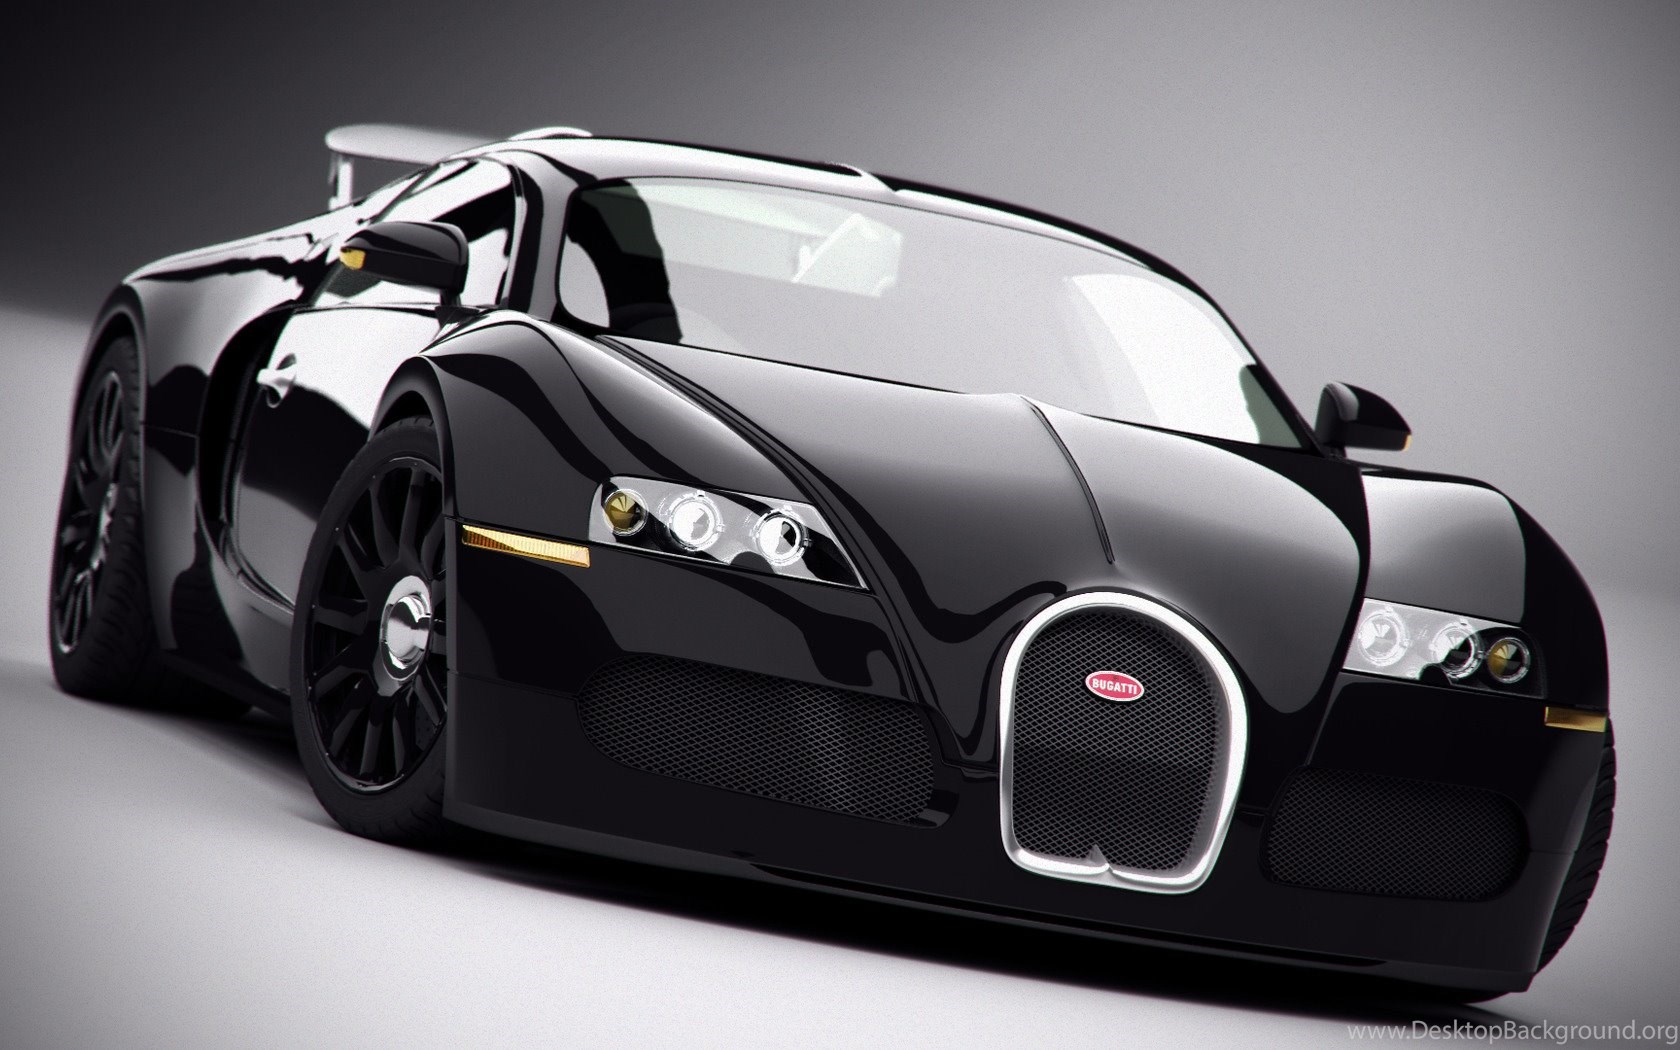 Car Wallpapers Hd 1680x1050 Free Wallpapers Full Hd 1080p High